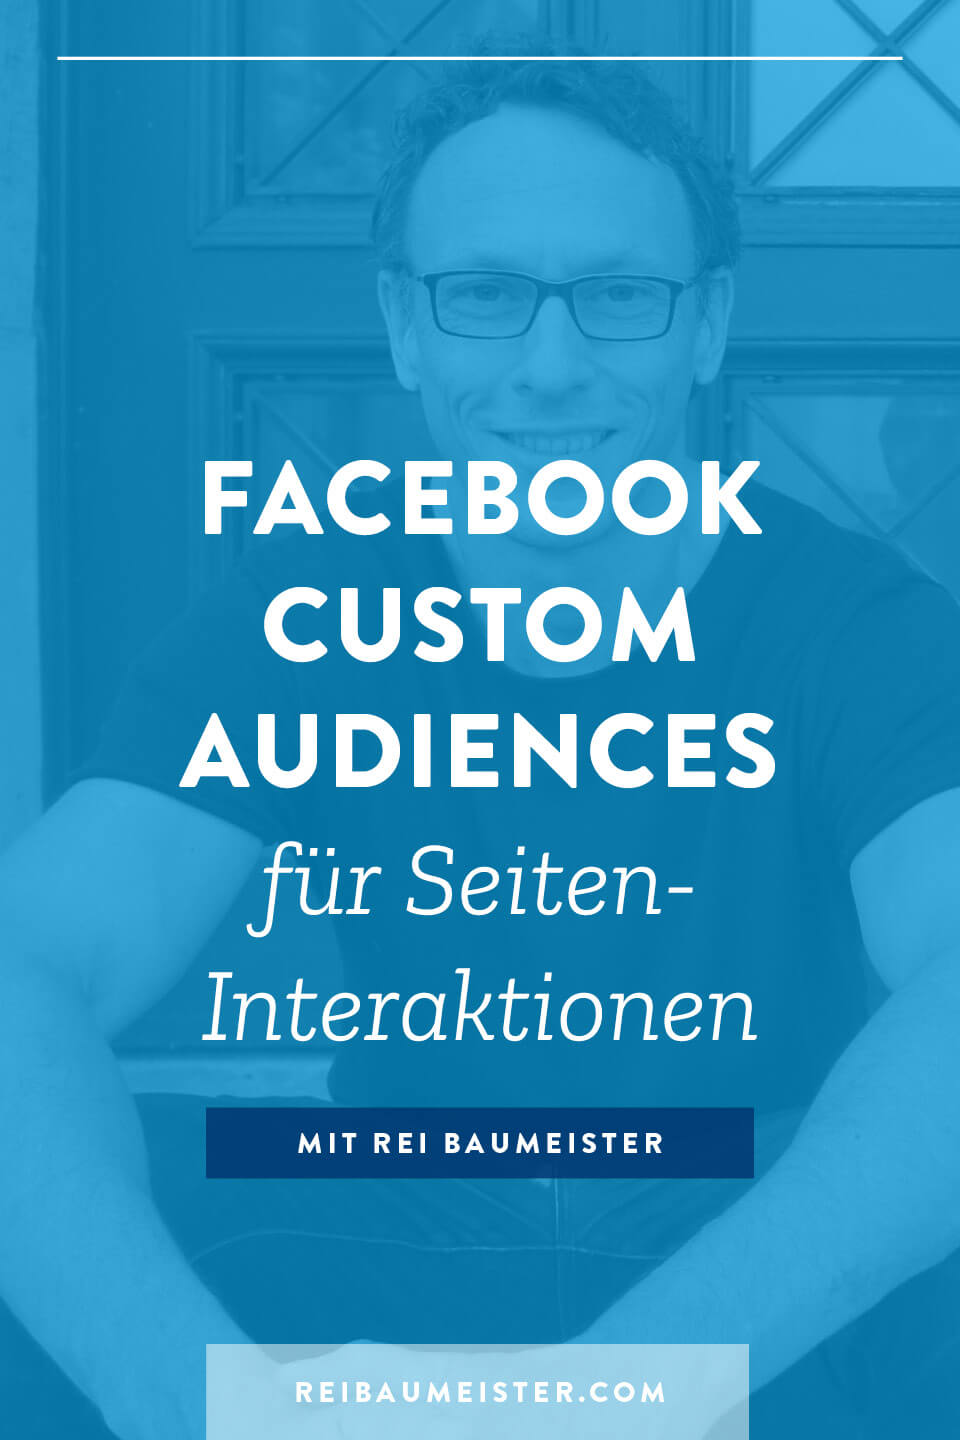 Facebook Custom Audiences für Seiten-Interaktionen